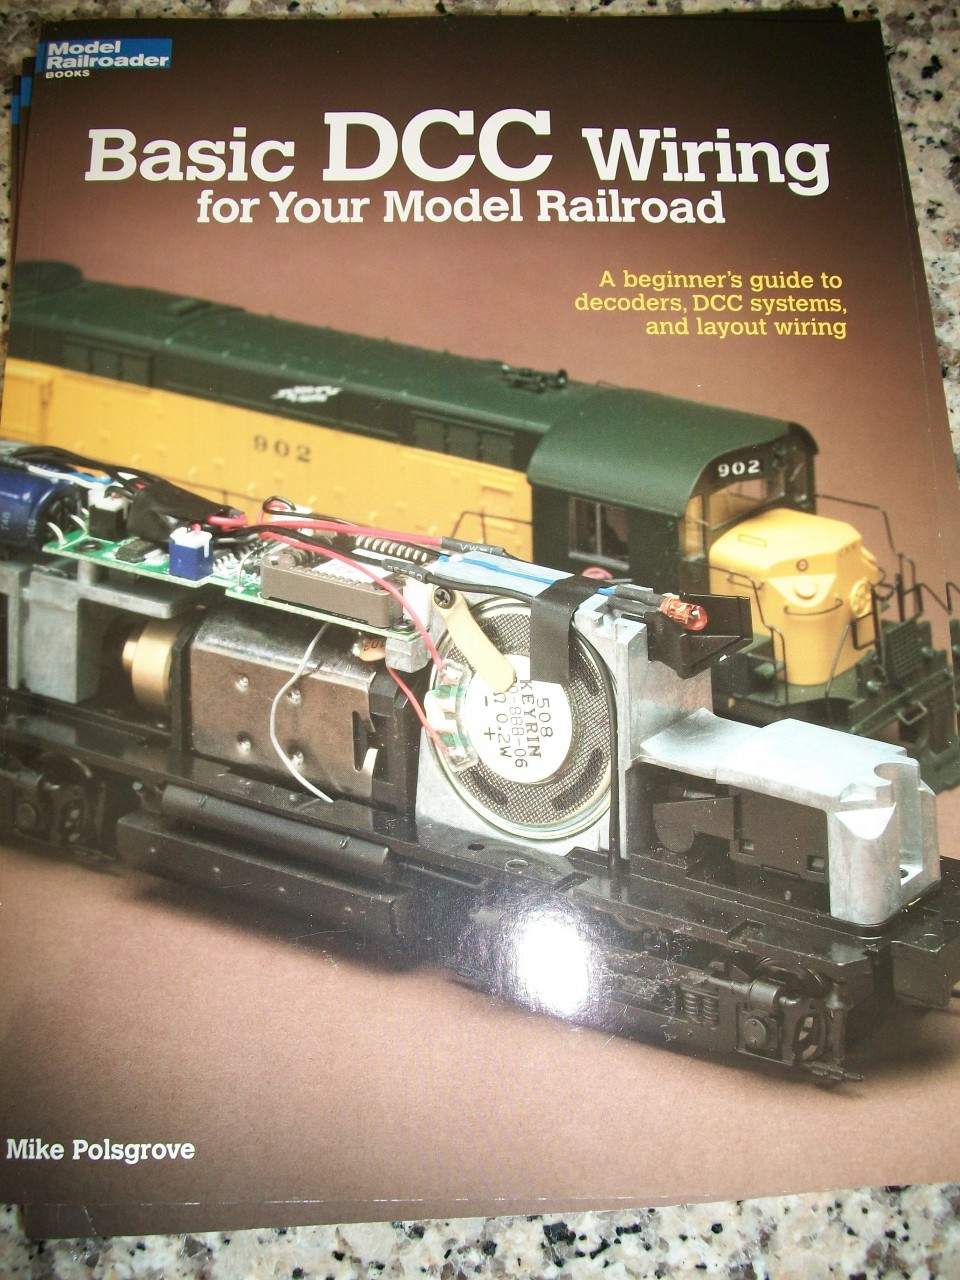 medium resolution of model railroader basic dcc wiring for your model railroad image 1 loading zoom